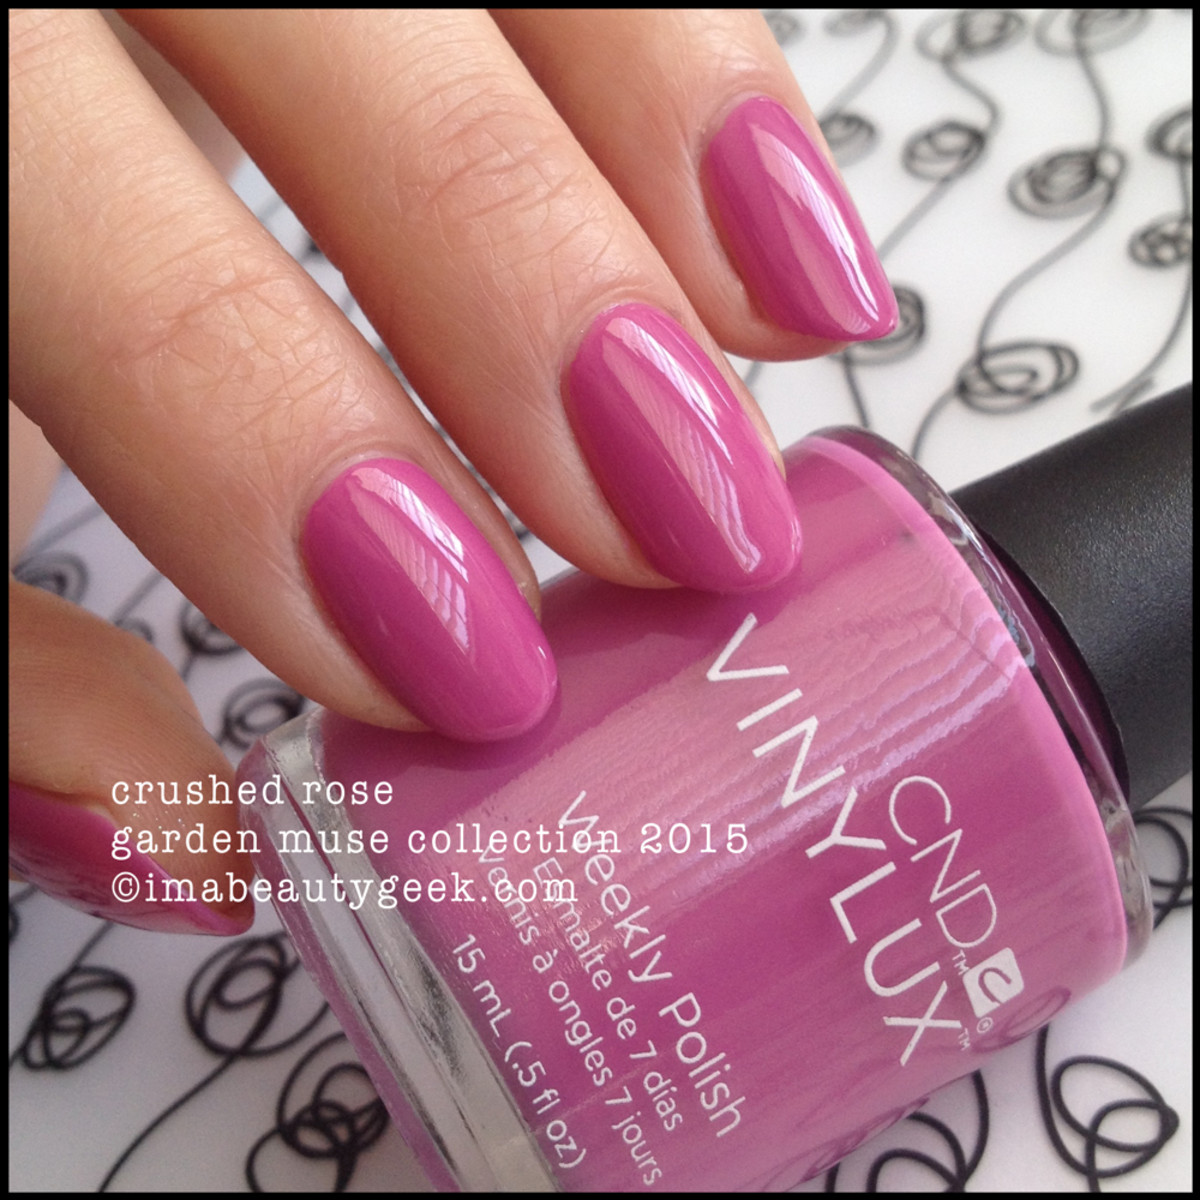 CND Vinylux Crushed Rose_Garden Muse Collection 2015